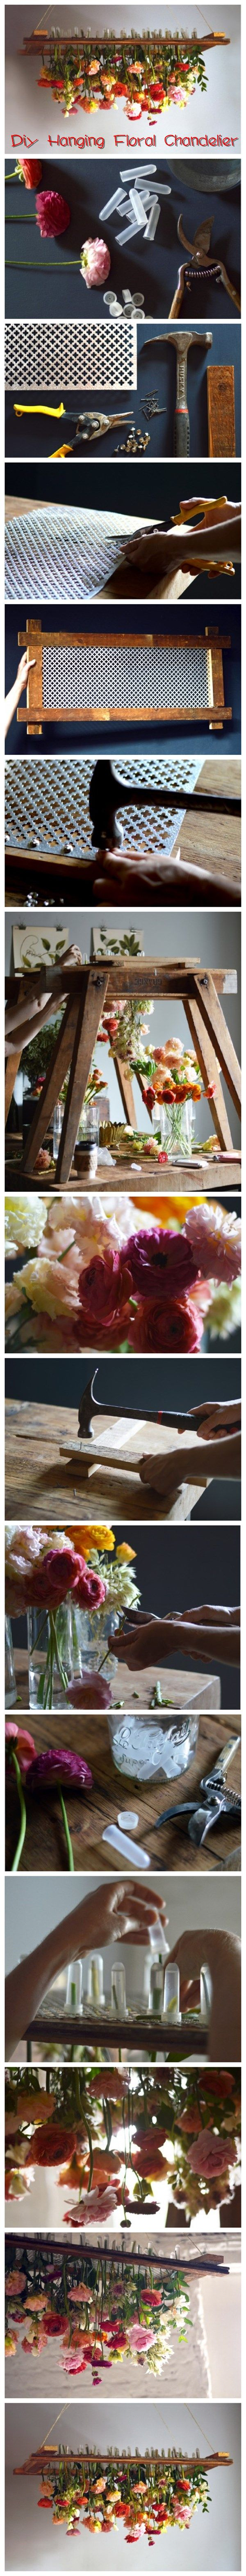 How To #Diy Hanging #Floral Chandelier #Tutorial